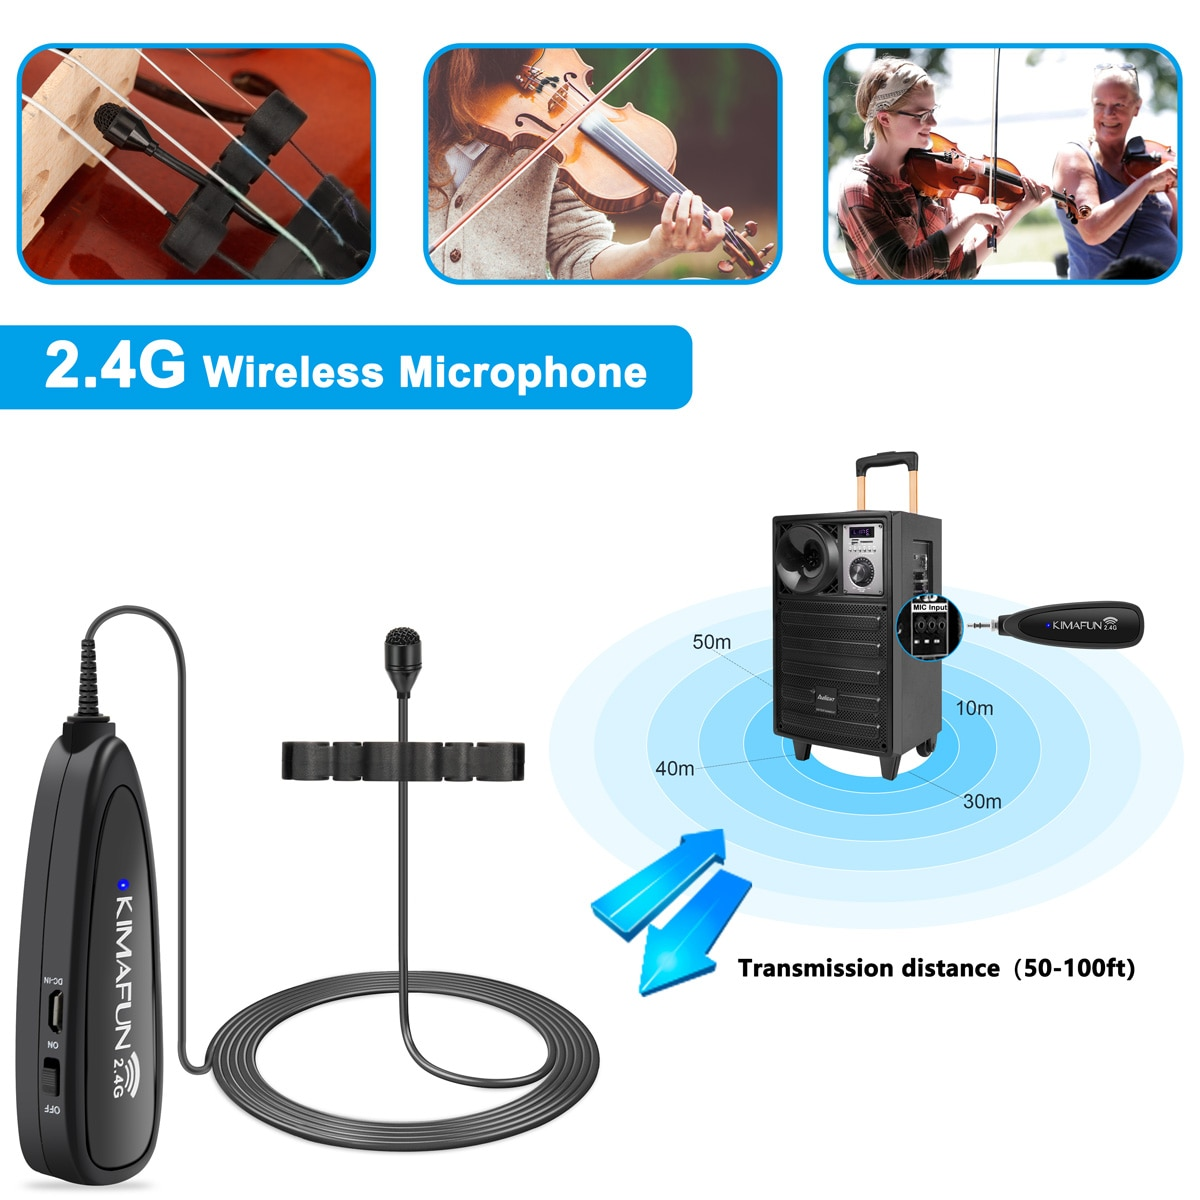 KIMAFUN 2.4G Mini Wireless Violin Microphone Professional Musical Instrument Condenser Microphone System for Stage Performance enlarge